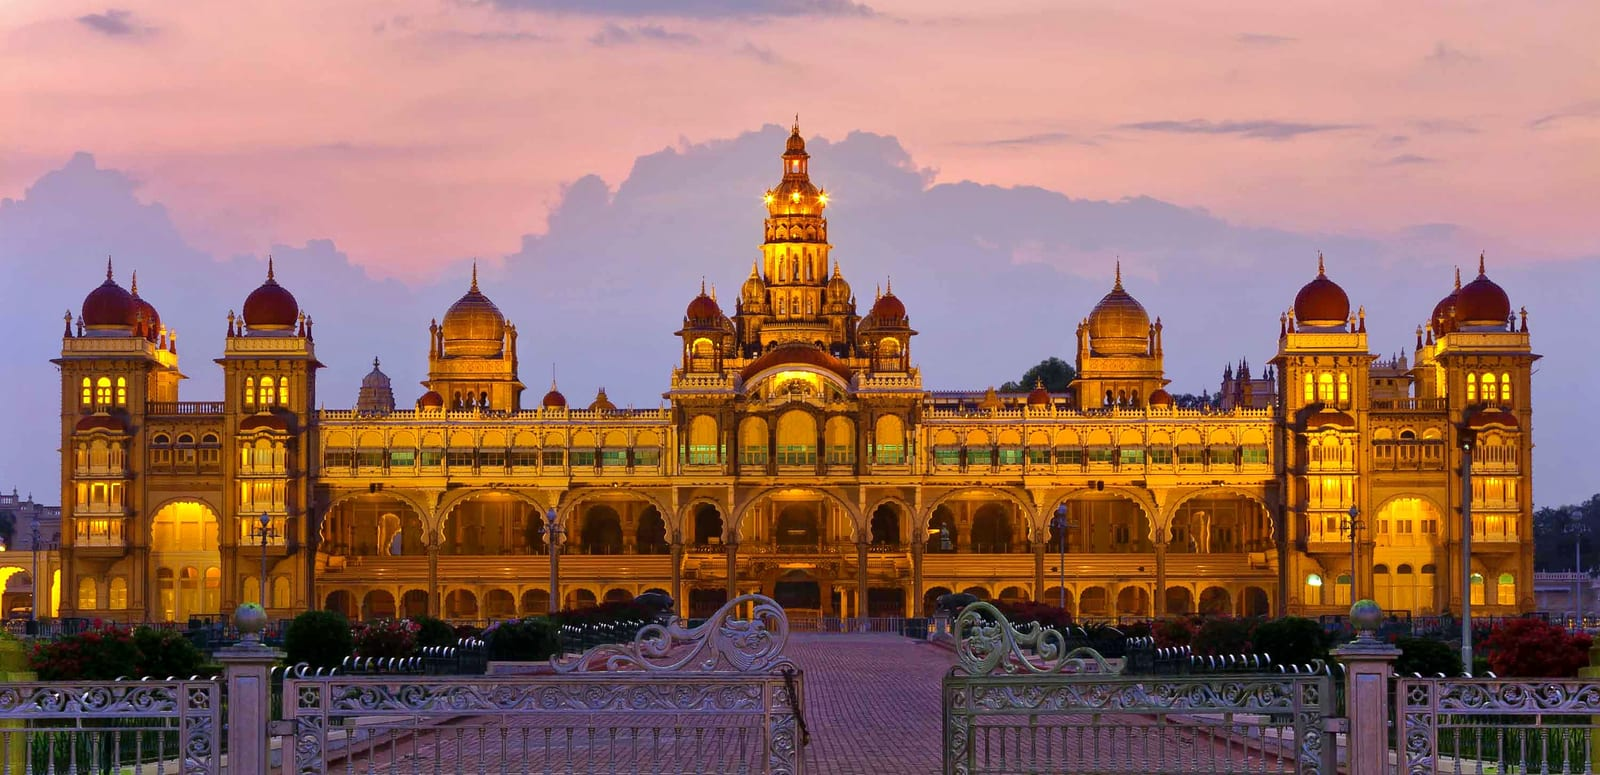 35 Places to Visit in Mysore - 2019 Updated With Photos & FAQ's